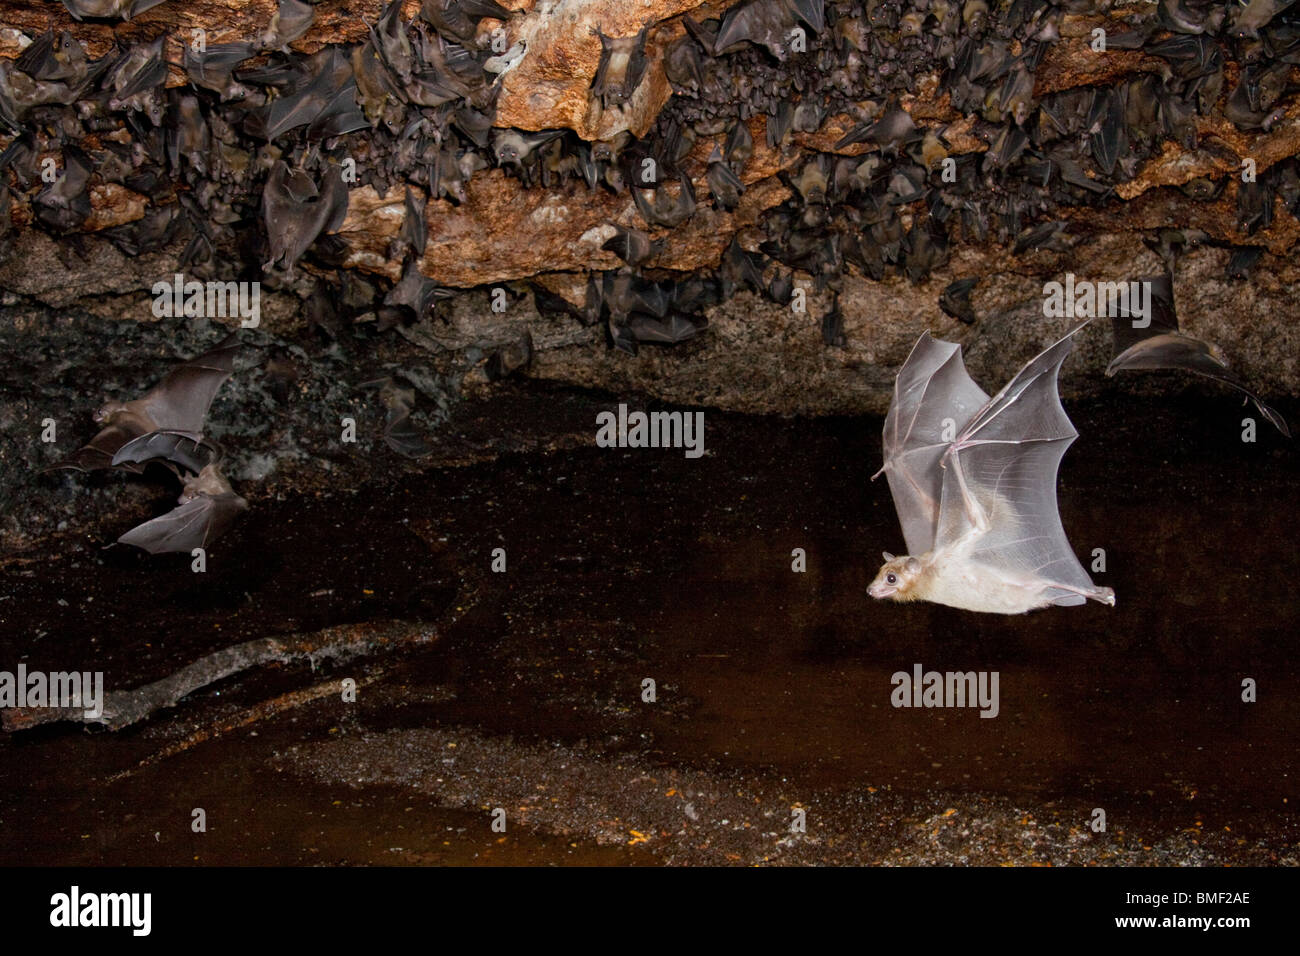 A colony of the Egyptian fruit bats (Rousettus aegyptiacus) in cave. - Stock Image